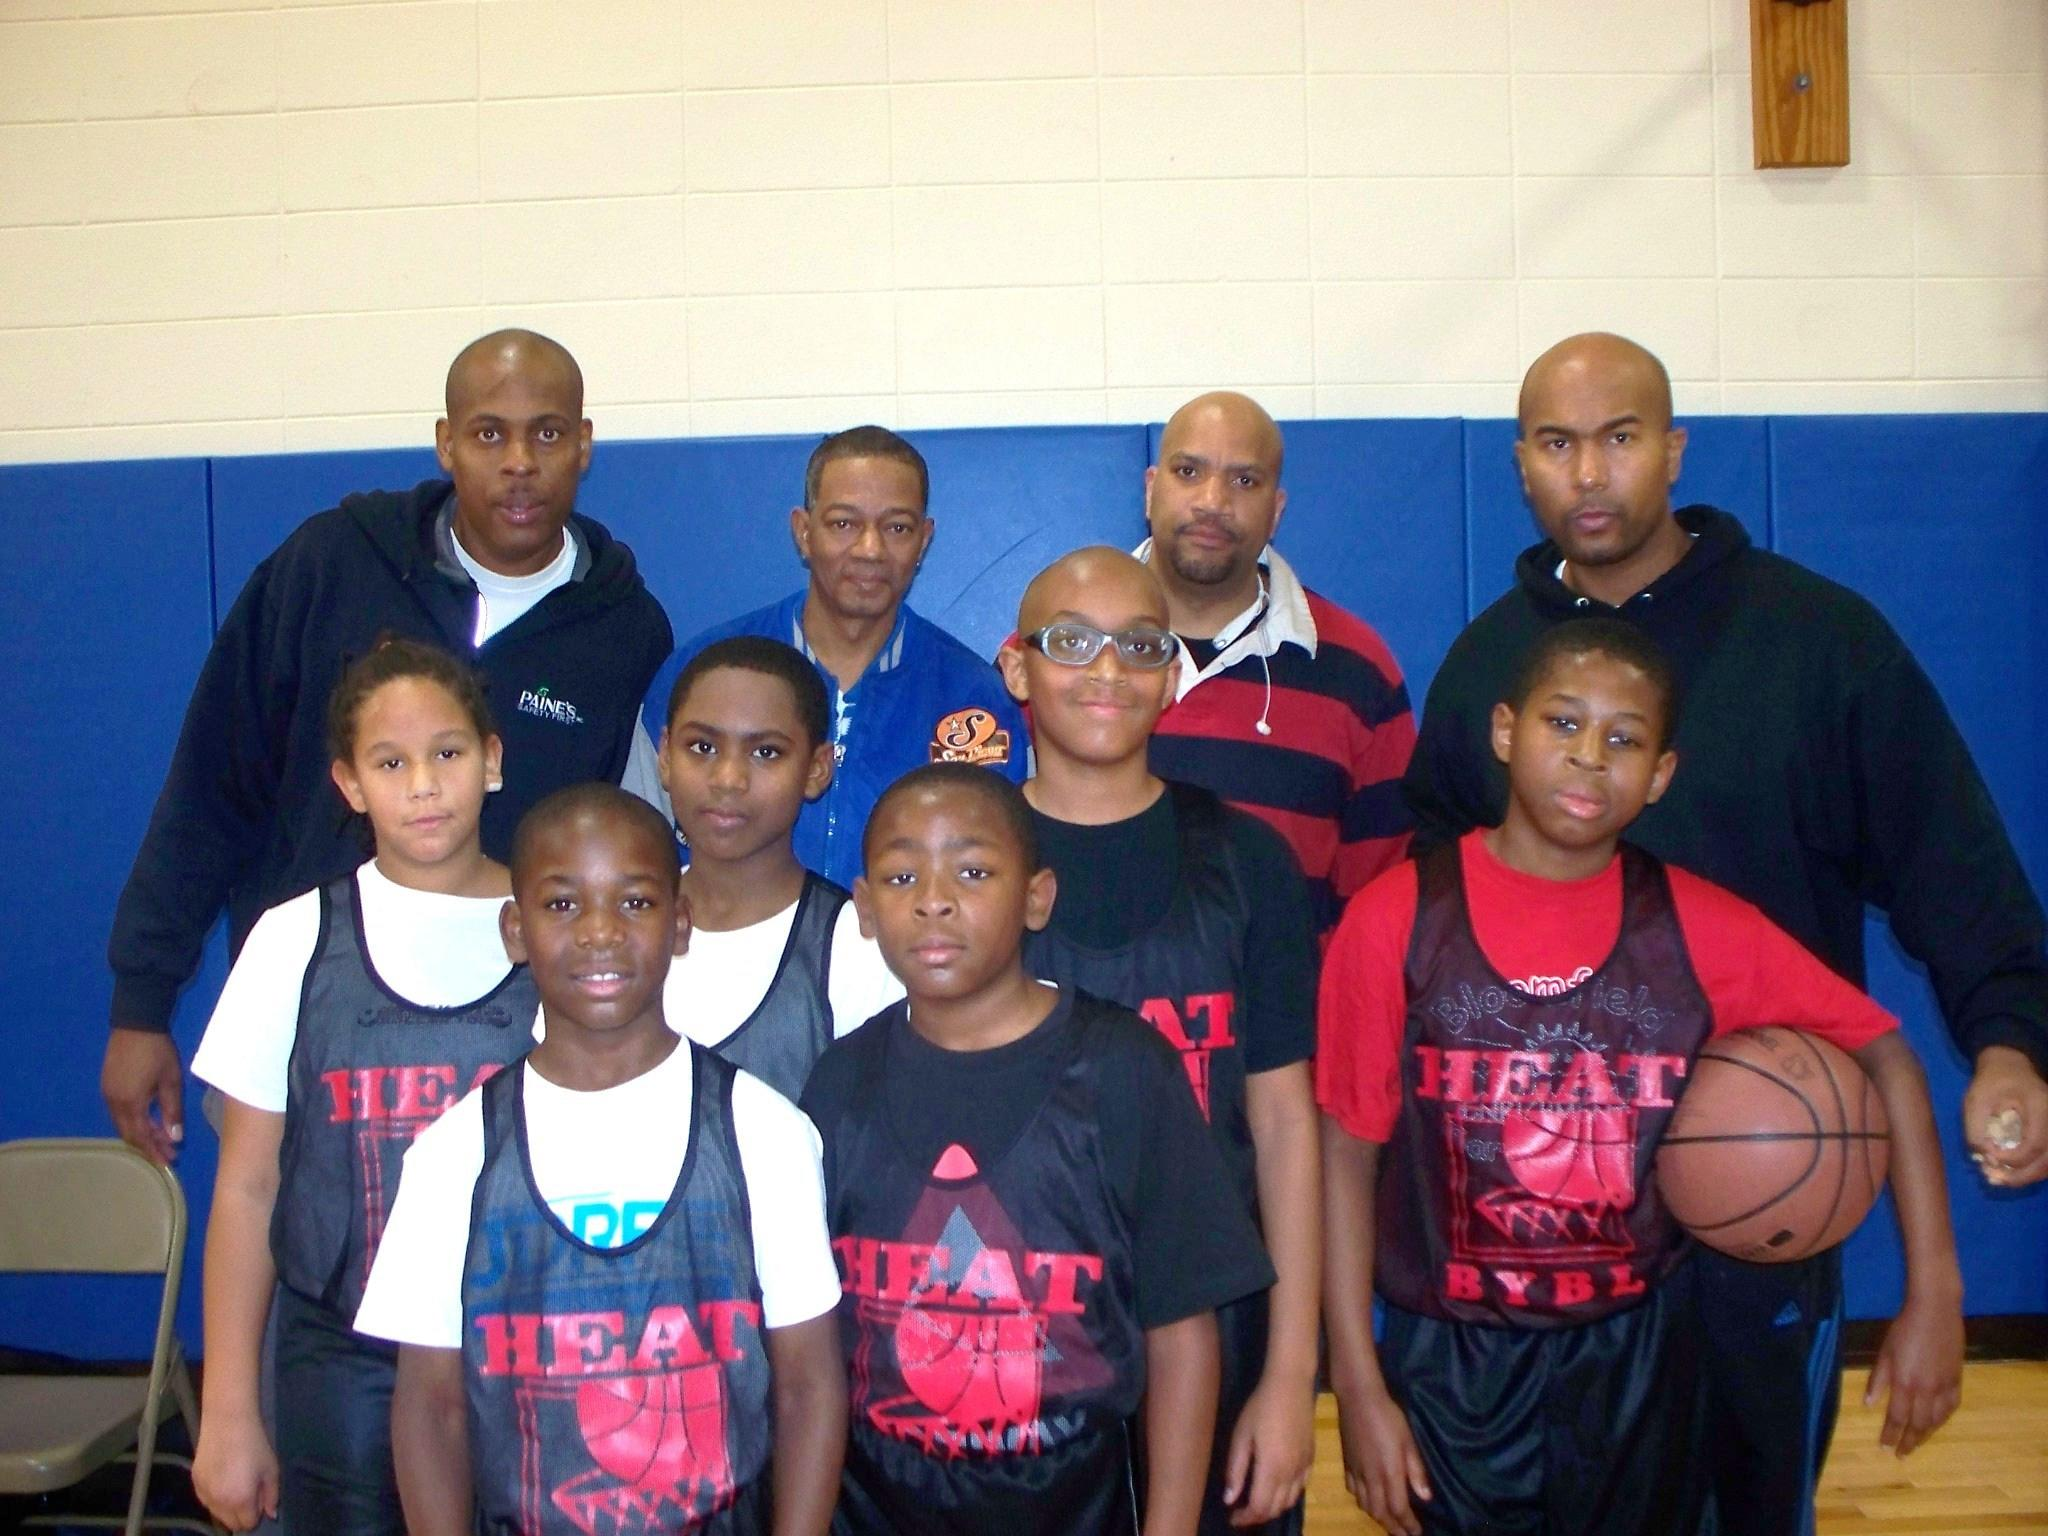 The BYBL 5th/6th grade division Heat players and coaching staff pose for a picture after defeating the Cavaliers 34-6 during week three of basketball on Saturday, Feb. 1.